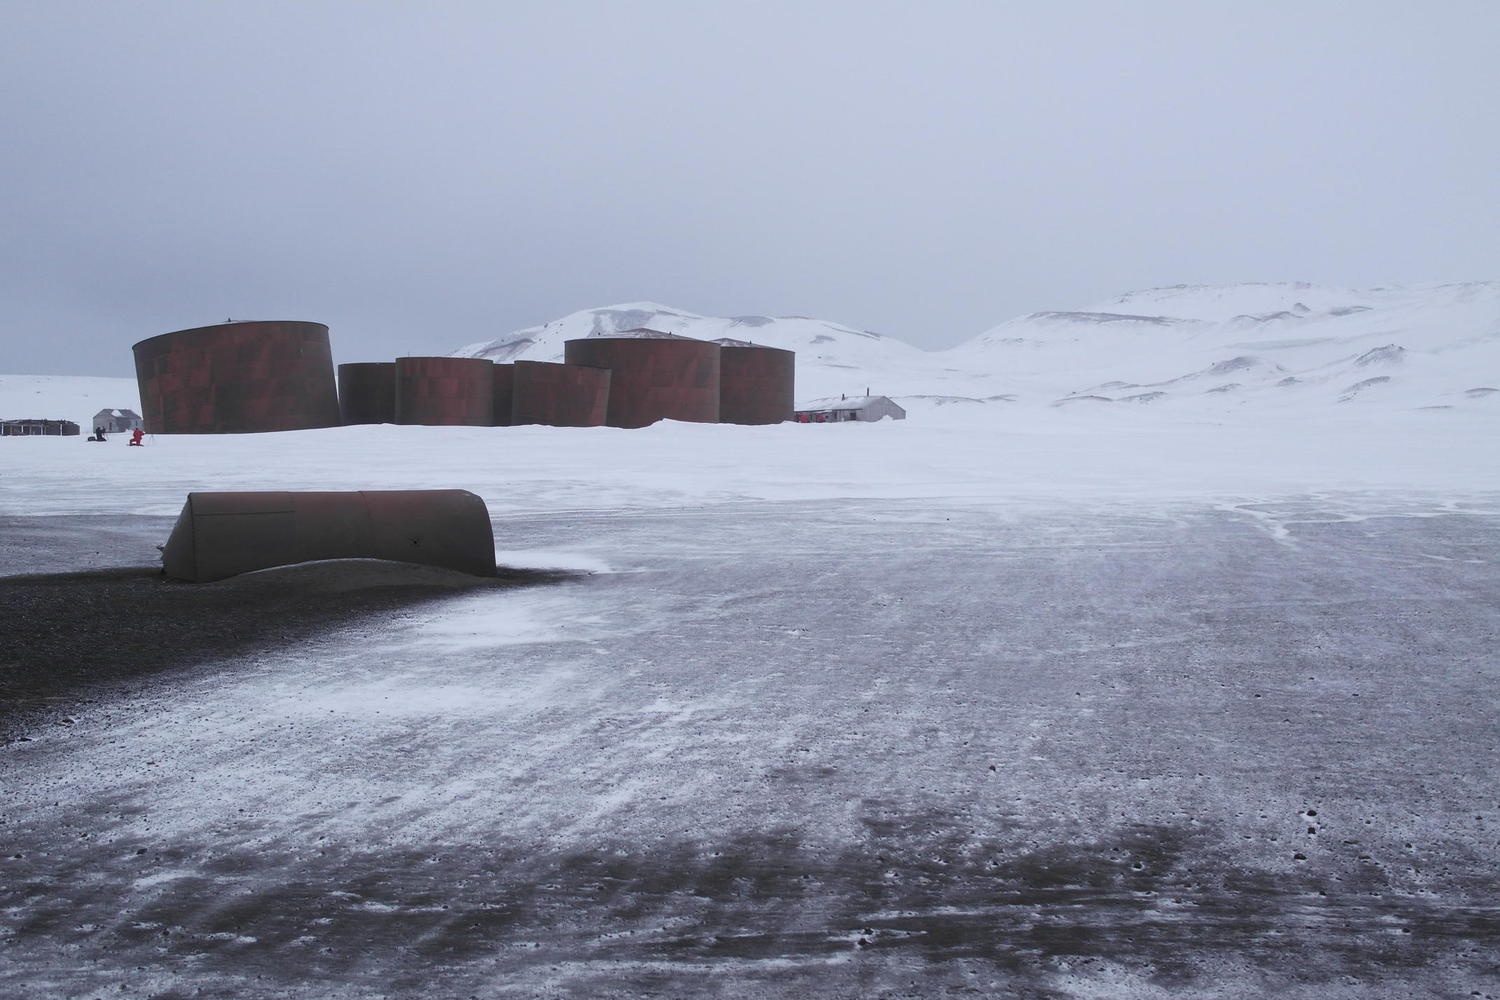 Drifting snow on the desolate beach of Whalers Bay, with the ruins of old fuel tanks